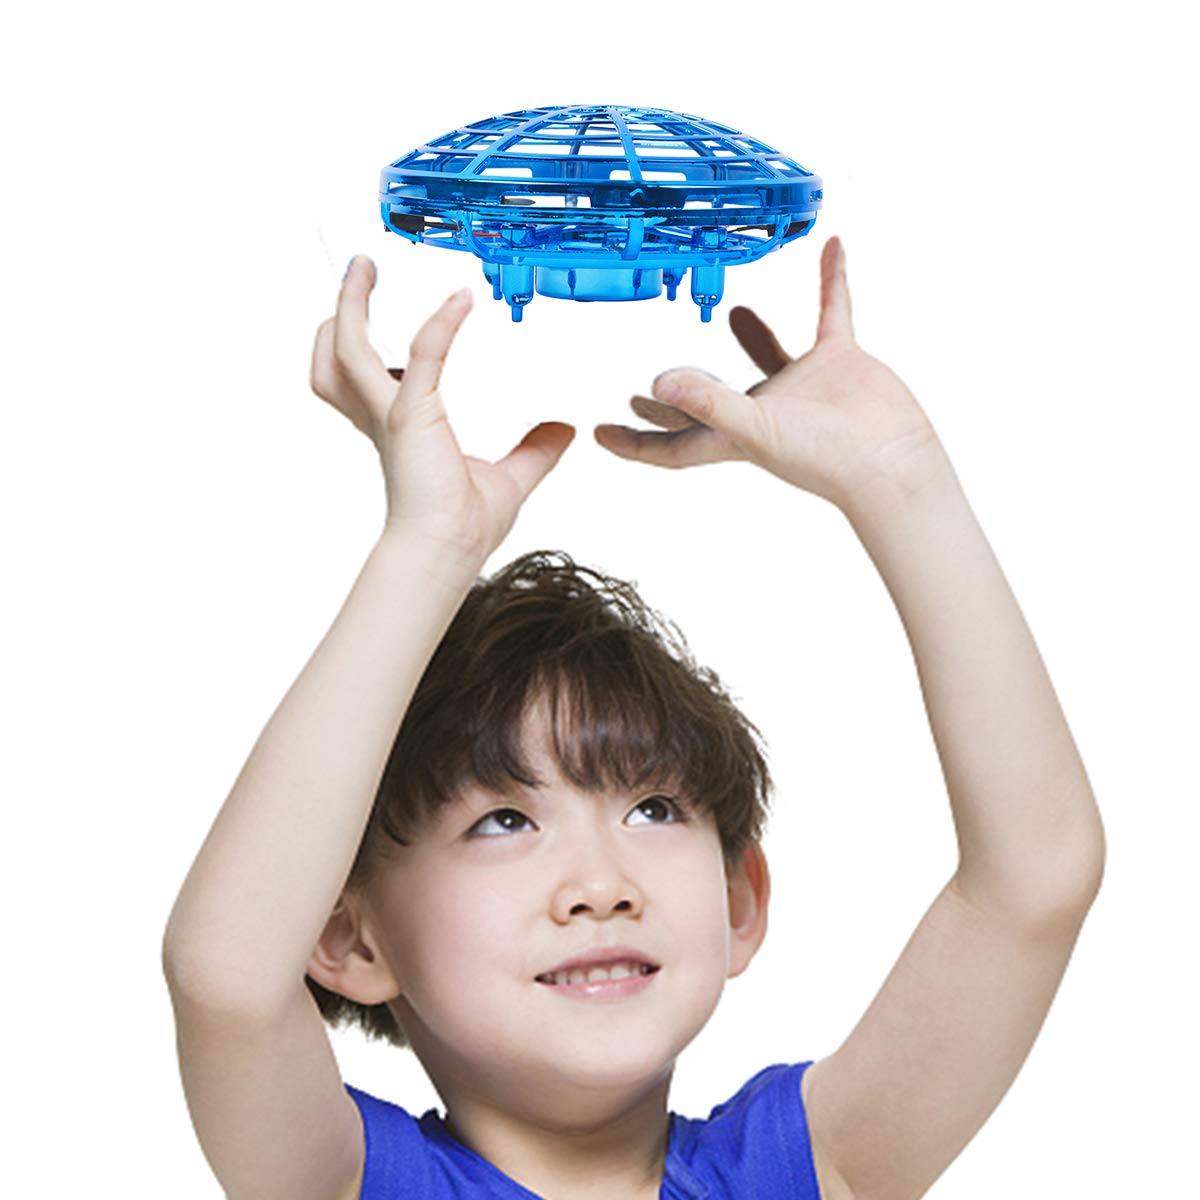 Oucles Mini Drones for Kids and Adults Ball with 360° Rotating and Shinning LED Lights, Flying Toy for Boys Girls and Kids Gifts by Oucles